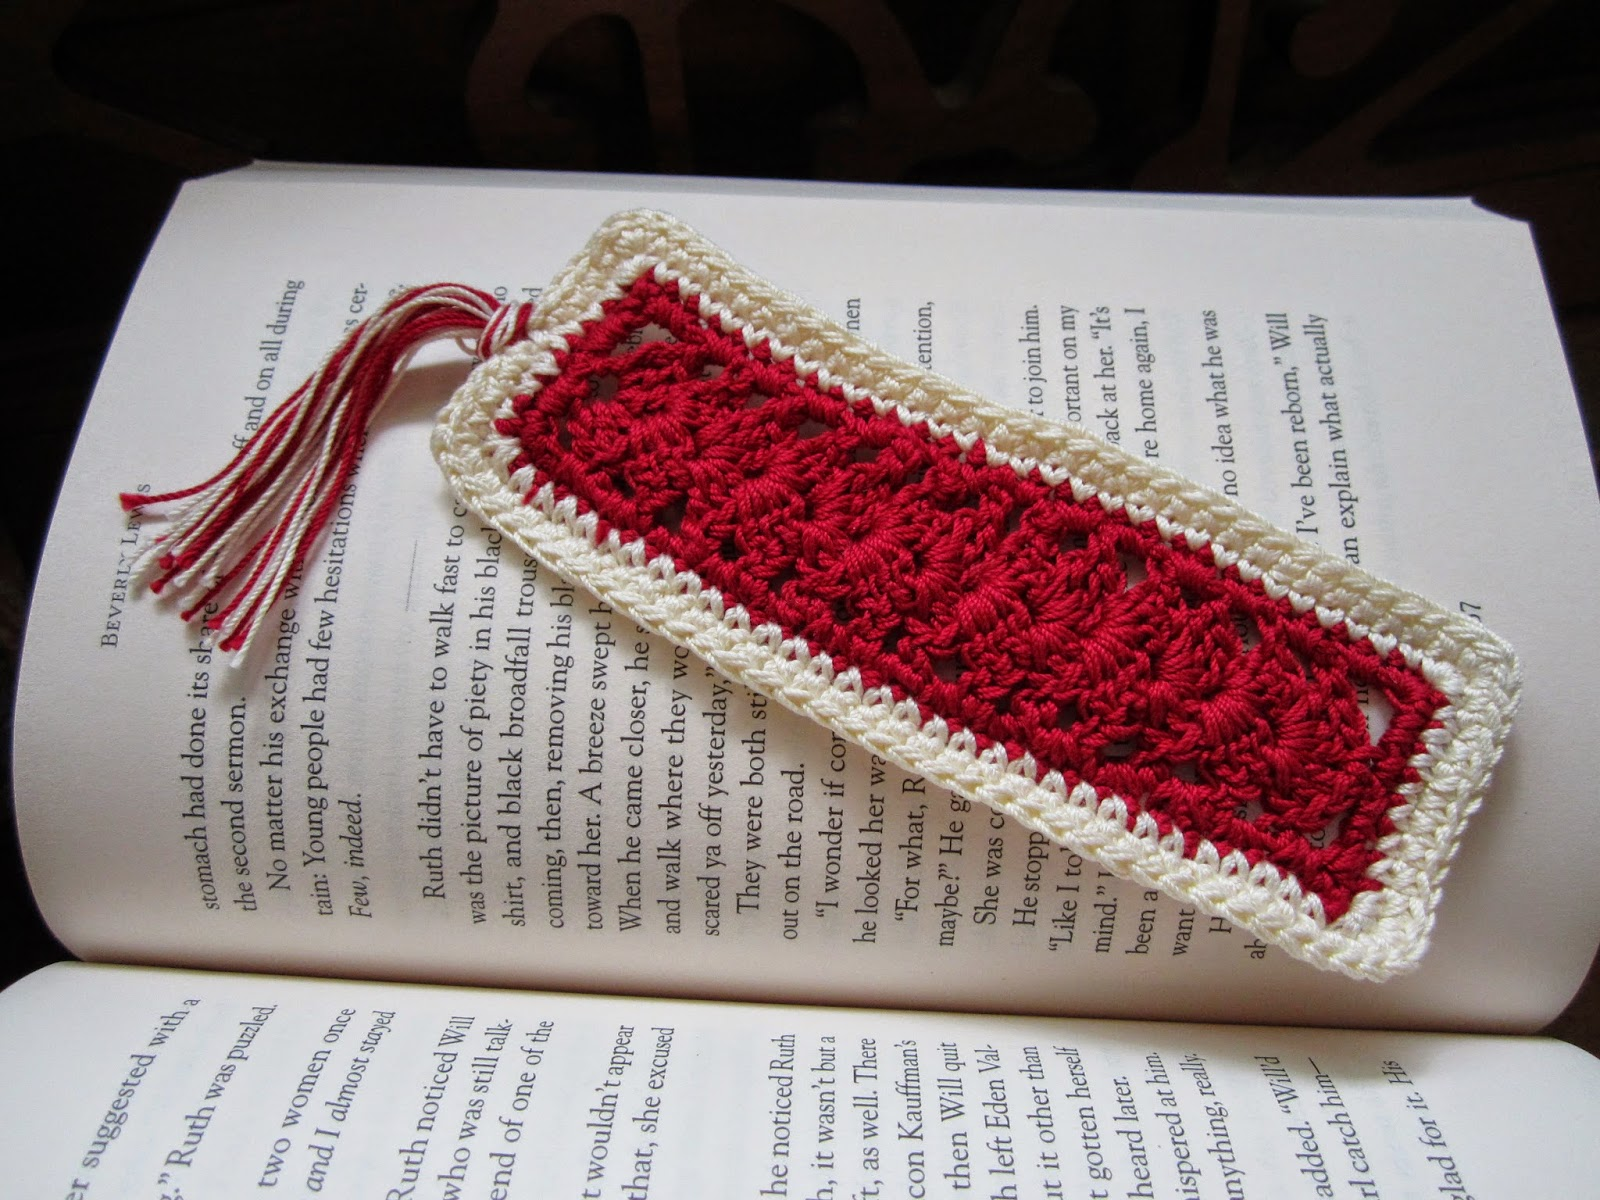 https://www.etsy.com/listing/188427828/scalloped-crocheted-bookmark-with-tassel?ref=shop_home_active_11